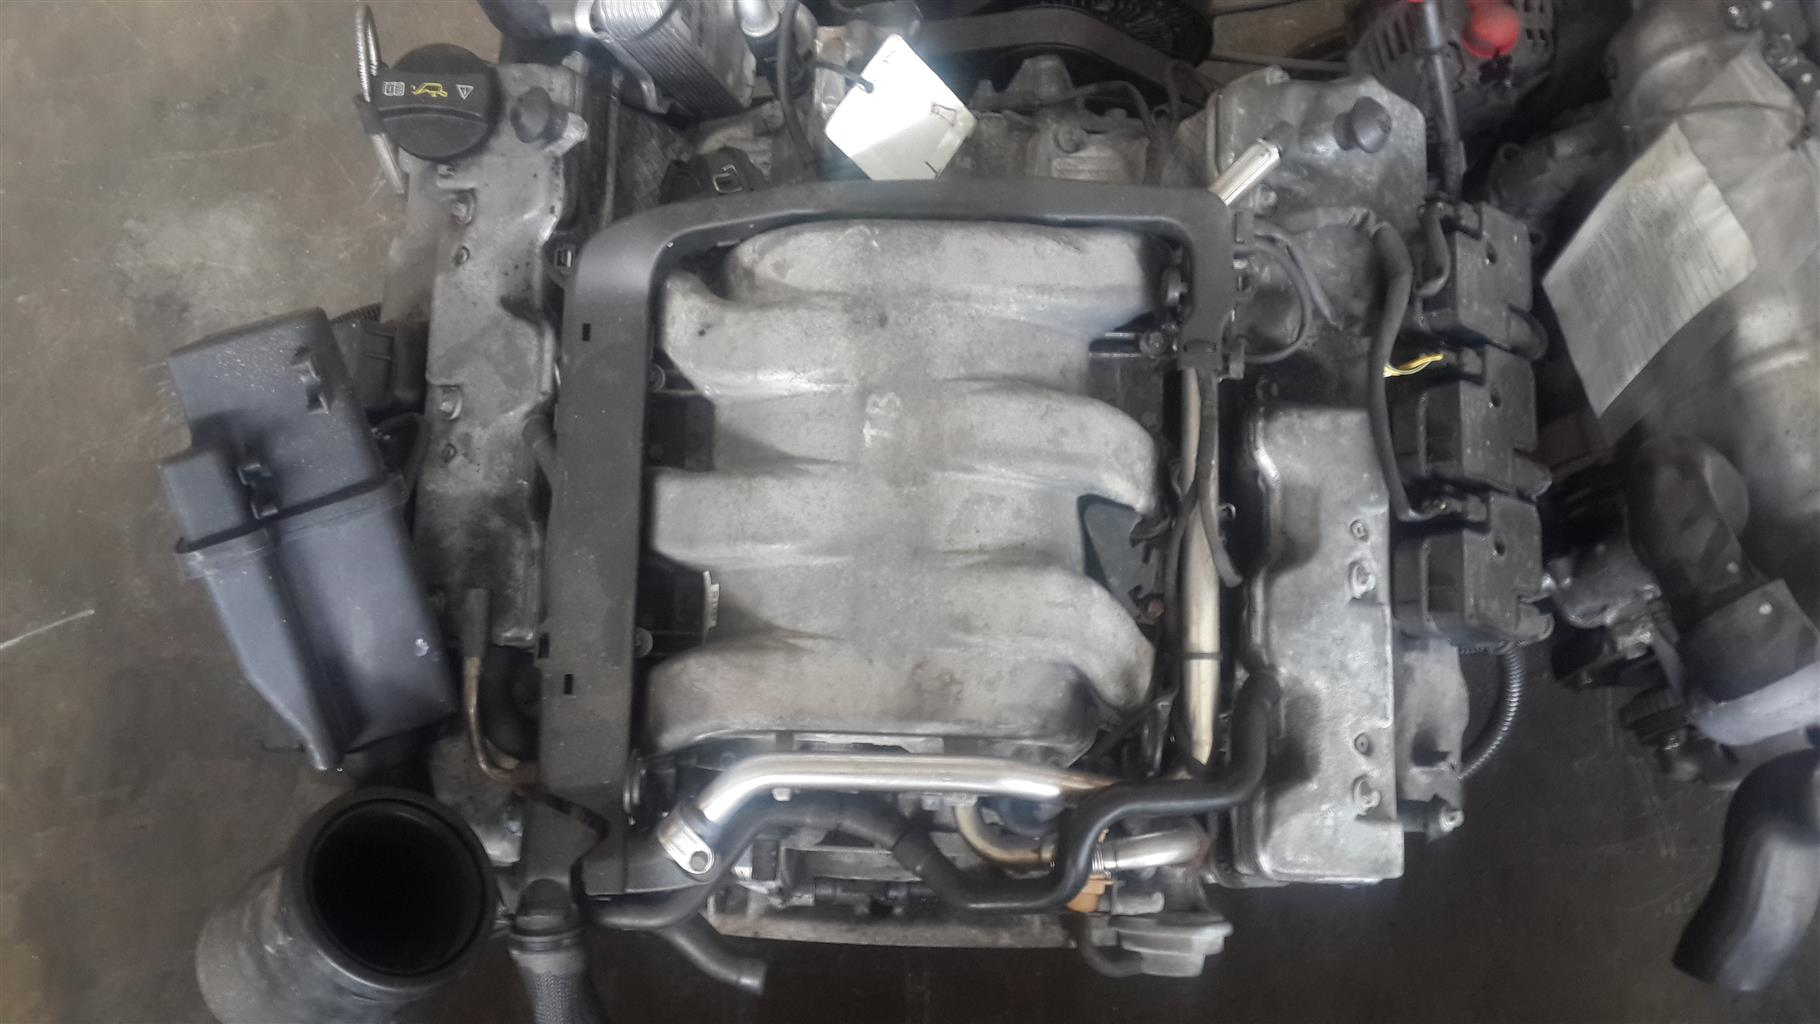 Mercedes Benz M112 Engine For Sale Junk Mail Exhaust